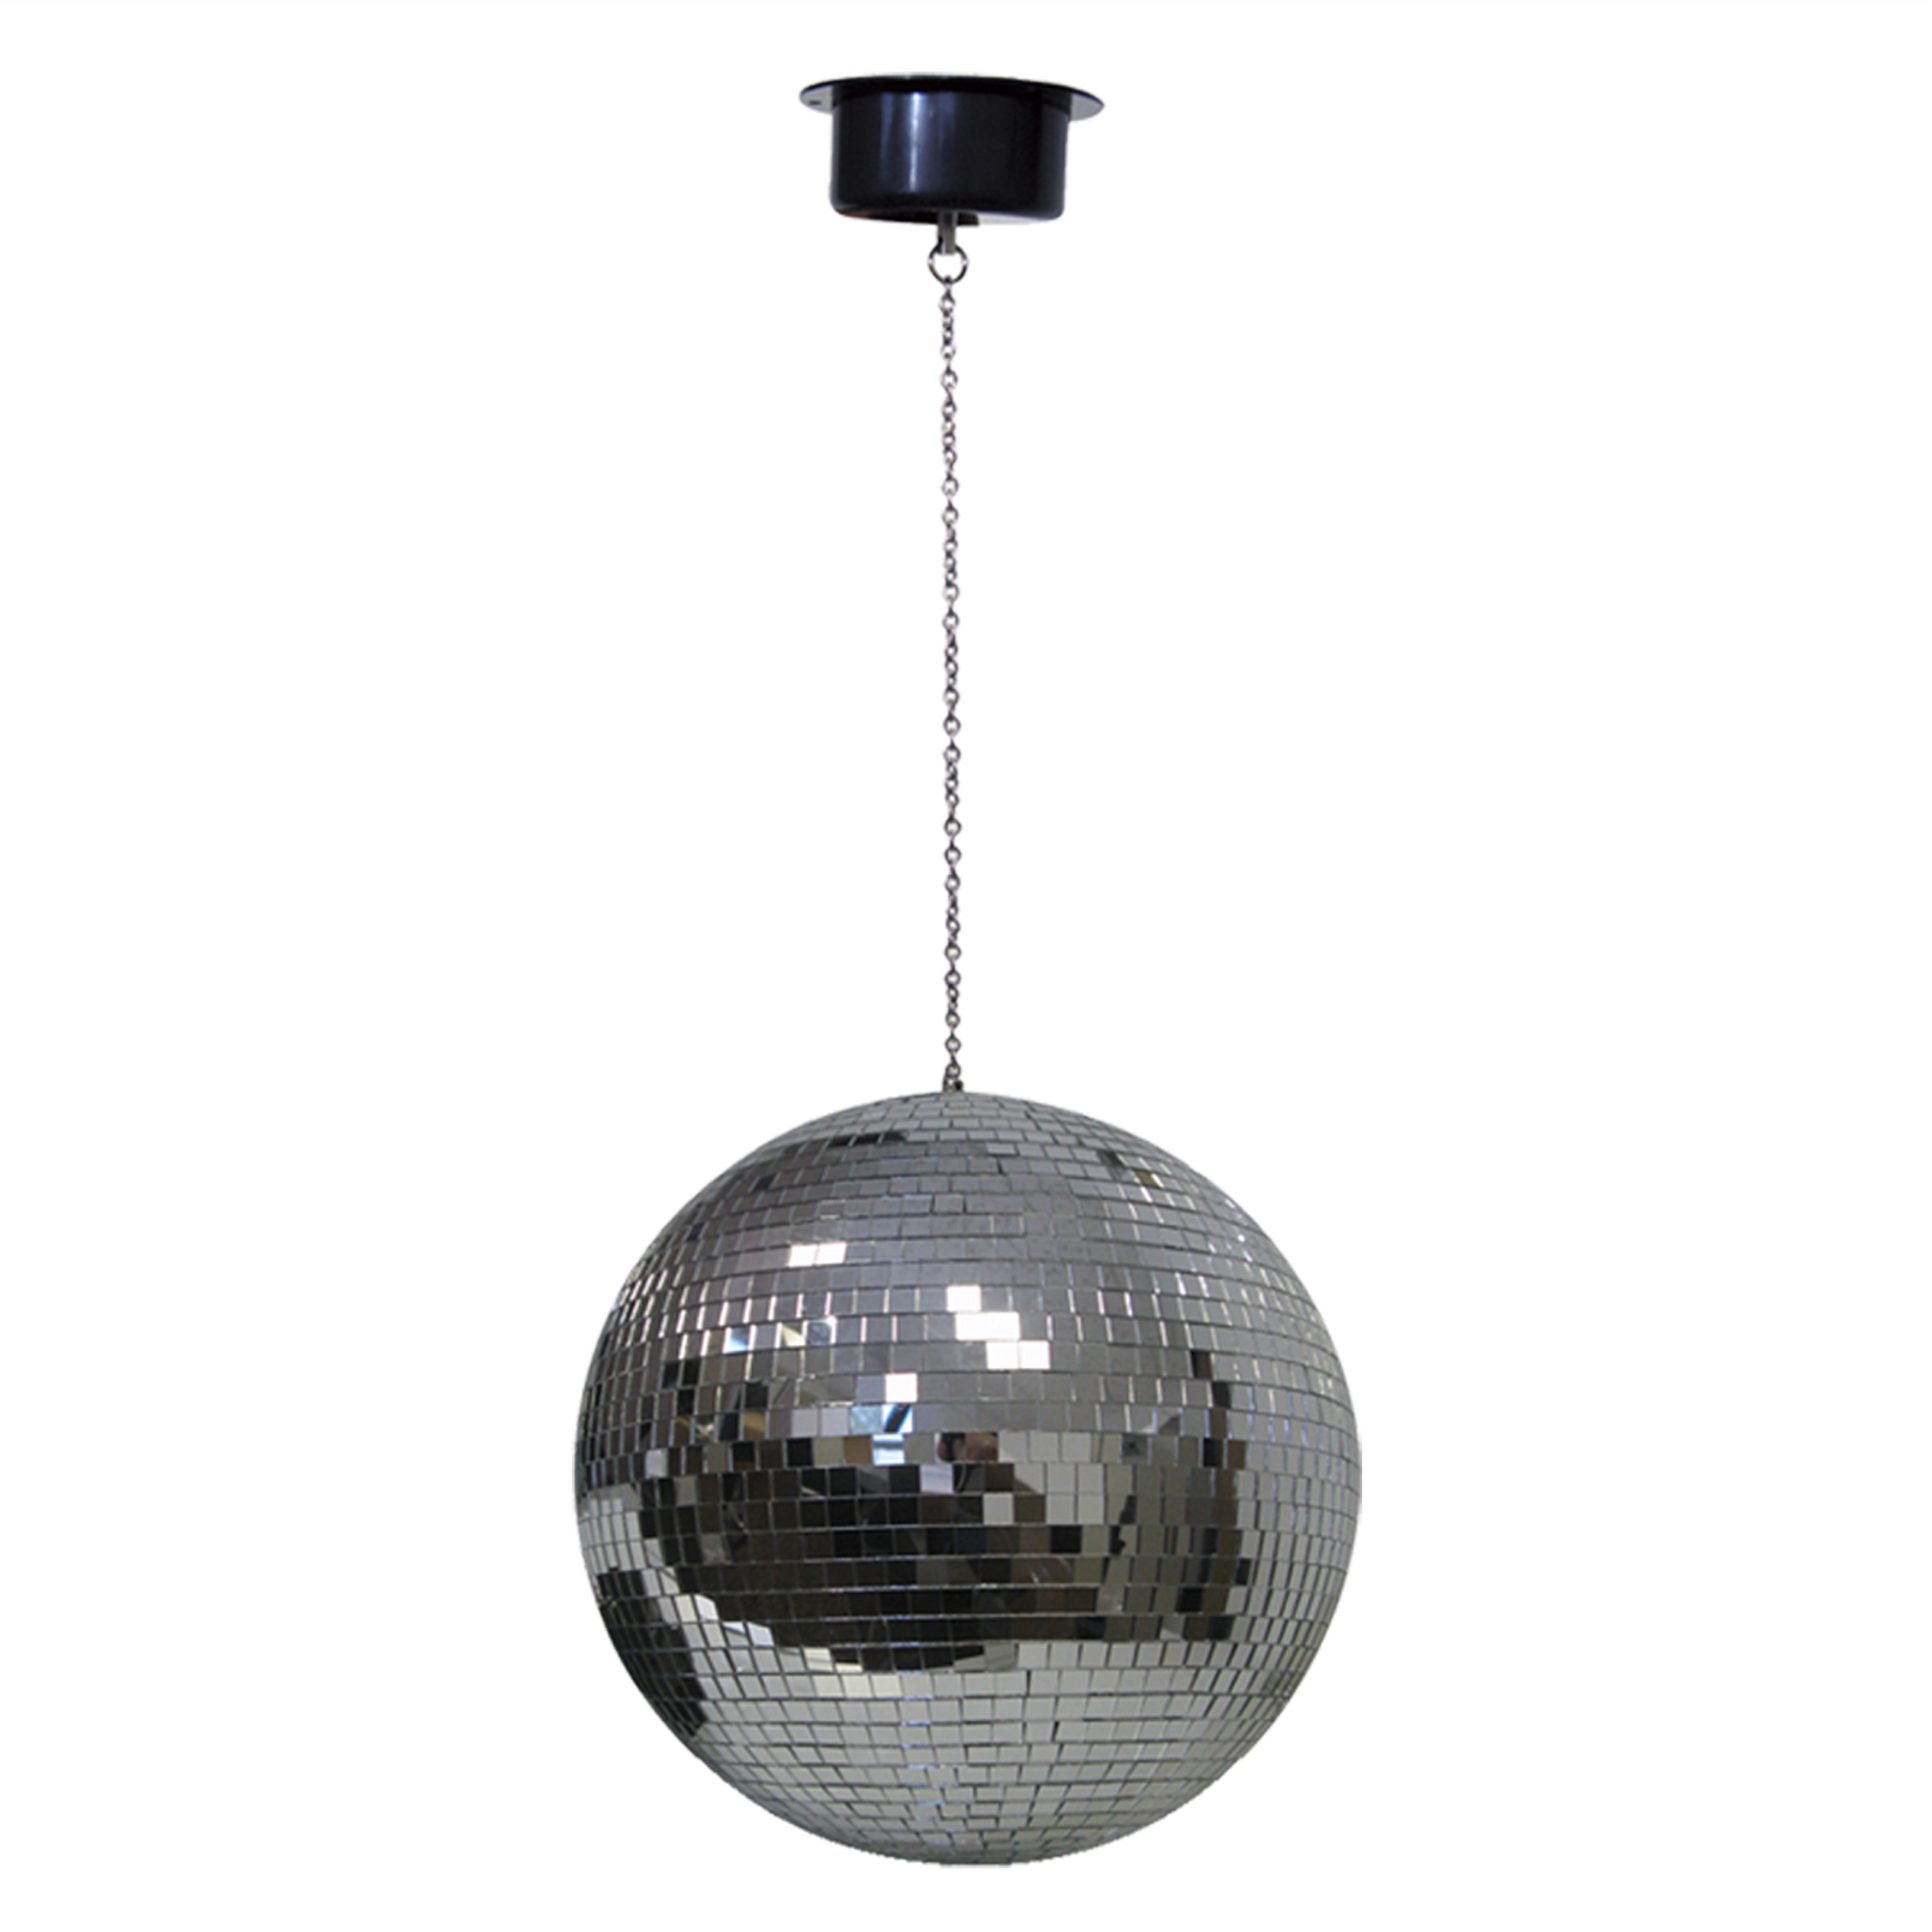 "Bathroom Lighting Fixtures Walmart disco ball 12"" mirror ball dj party motor combo light kit solid"